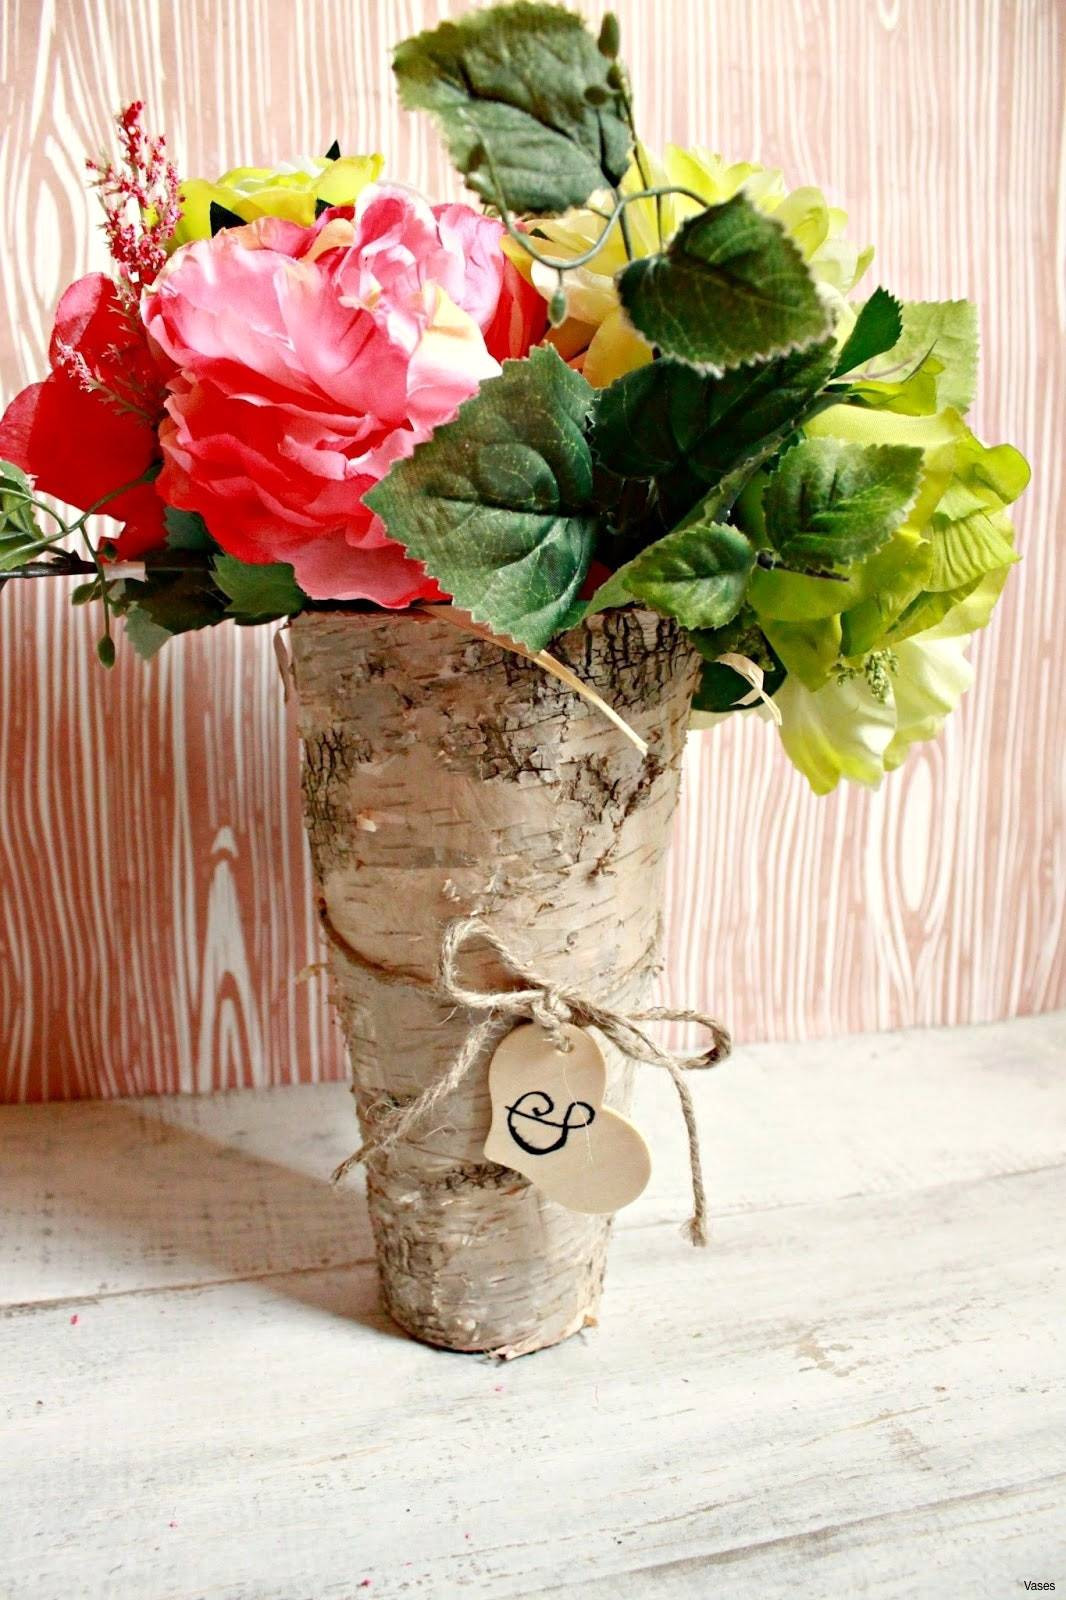 Tree Stump Vases for Sale Of Fall Wedding Decorations Cheap Best Of Flowers and Decorations for Intended for Fall Wedding Decorations Cheap Best Of Flowers and Decorations for Weddings H Vases Diy Wood Vase